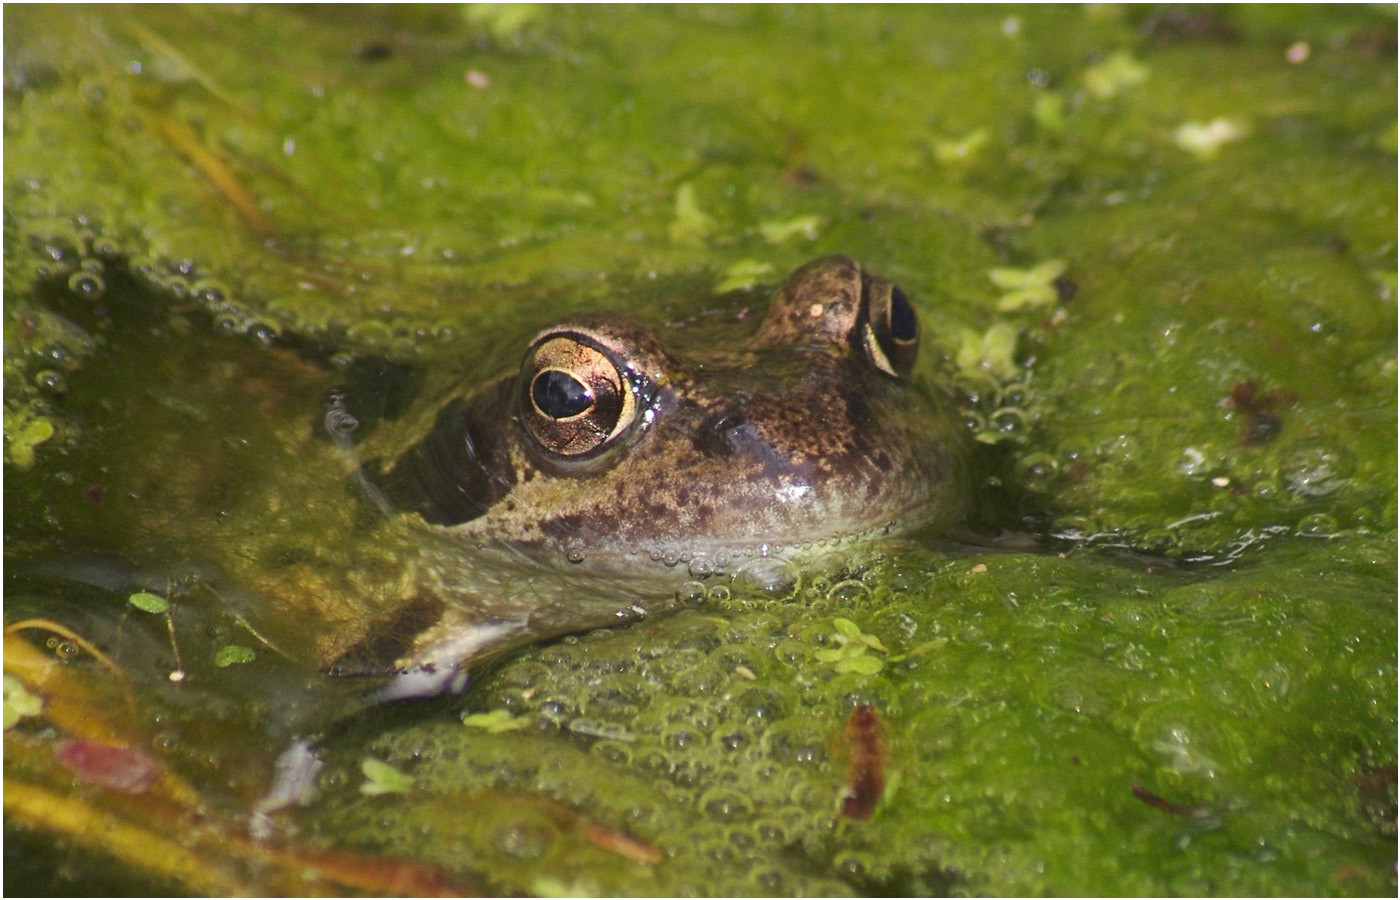 13 COMMON FROG RANA TEMPORARIA by Ron Gaisford